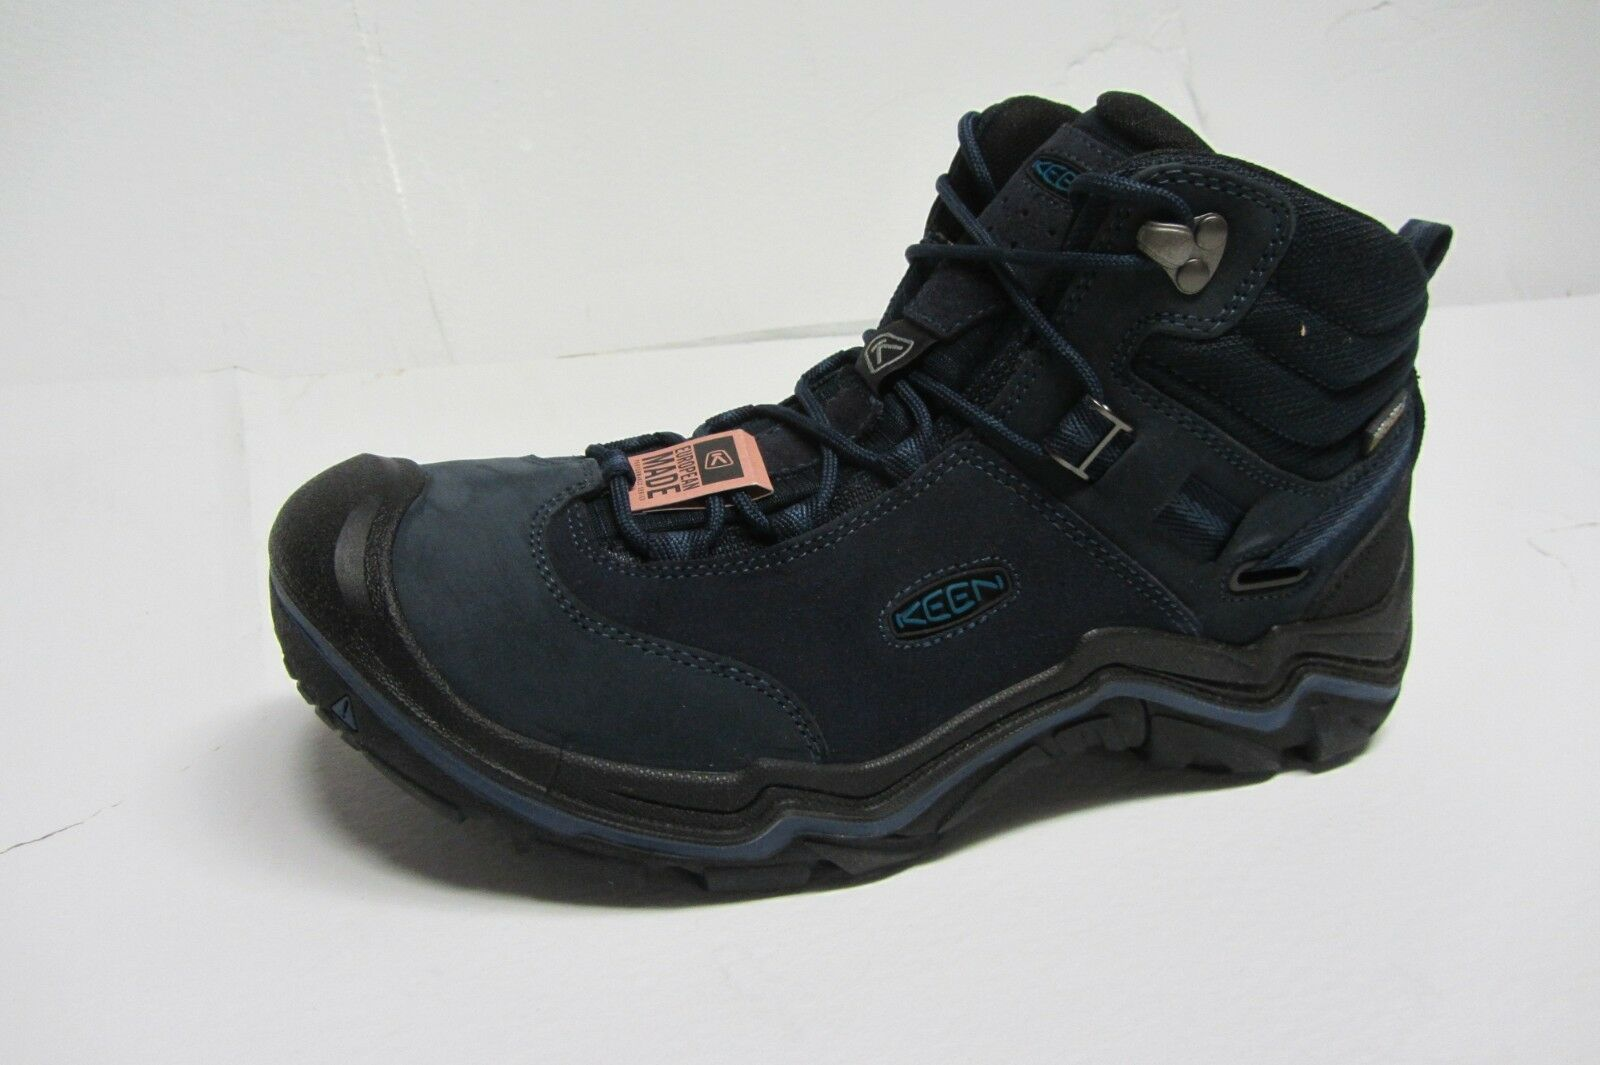 adf1775c1c0d New Keen Wanderer Mid WP Men s Hiking Boots US US US Size 9.5 color Dark  Sea ...